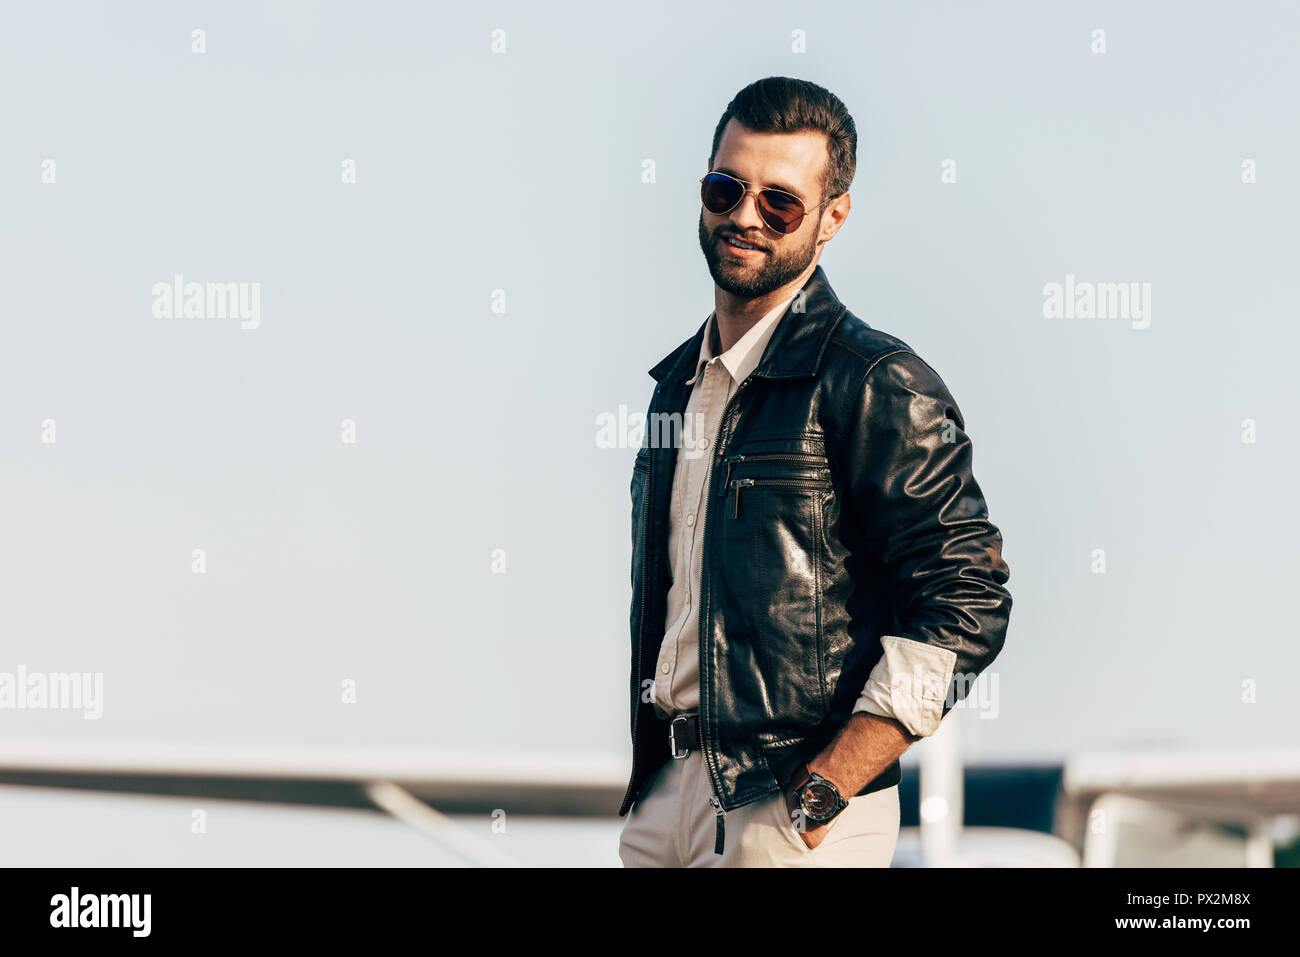 b579f4ebb30 young handsome male pilot in leather jacket and sunglasses posing near  airplane - Stock Image